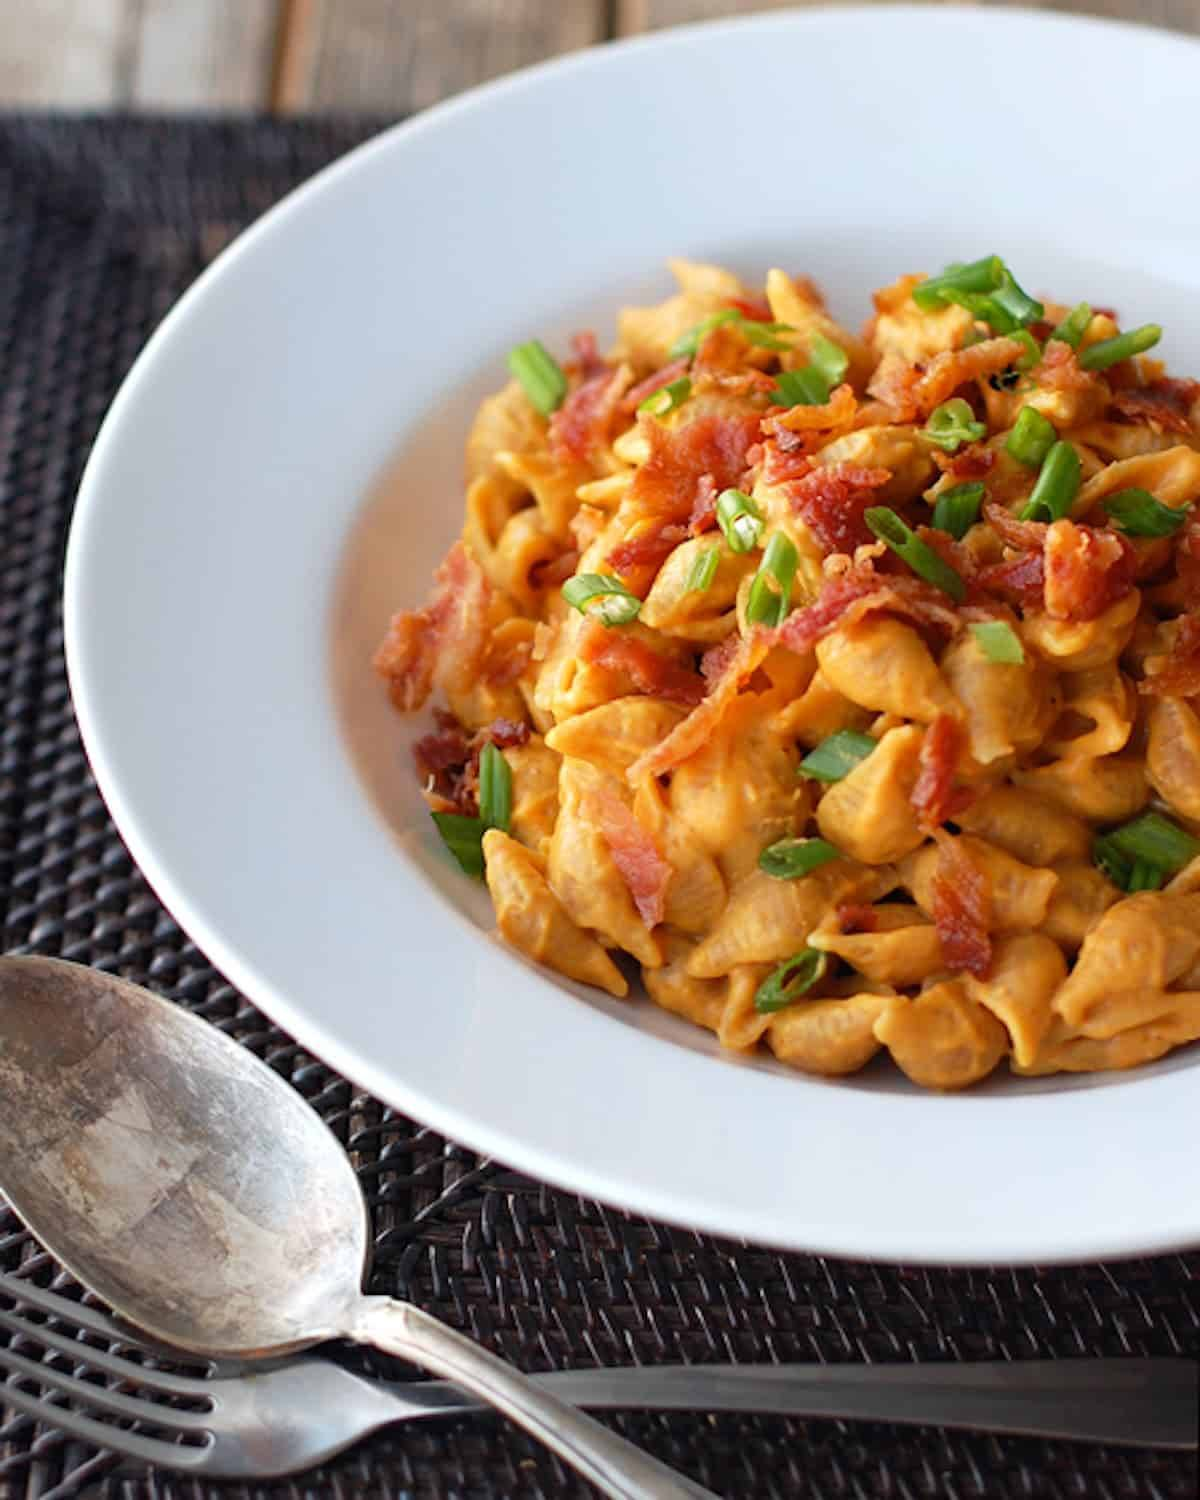 Bacon and pumpkin pasta with creamy pumpkin sauce, whole wheat pasta shells, and crumbled bacon in a white bowl with a spoon and a fork.